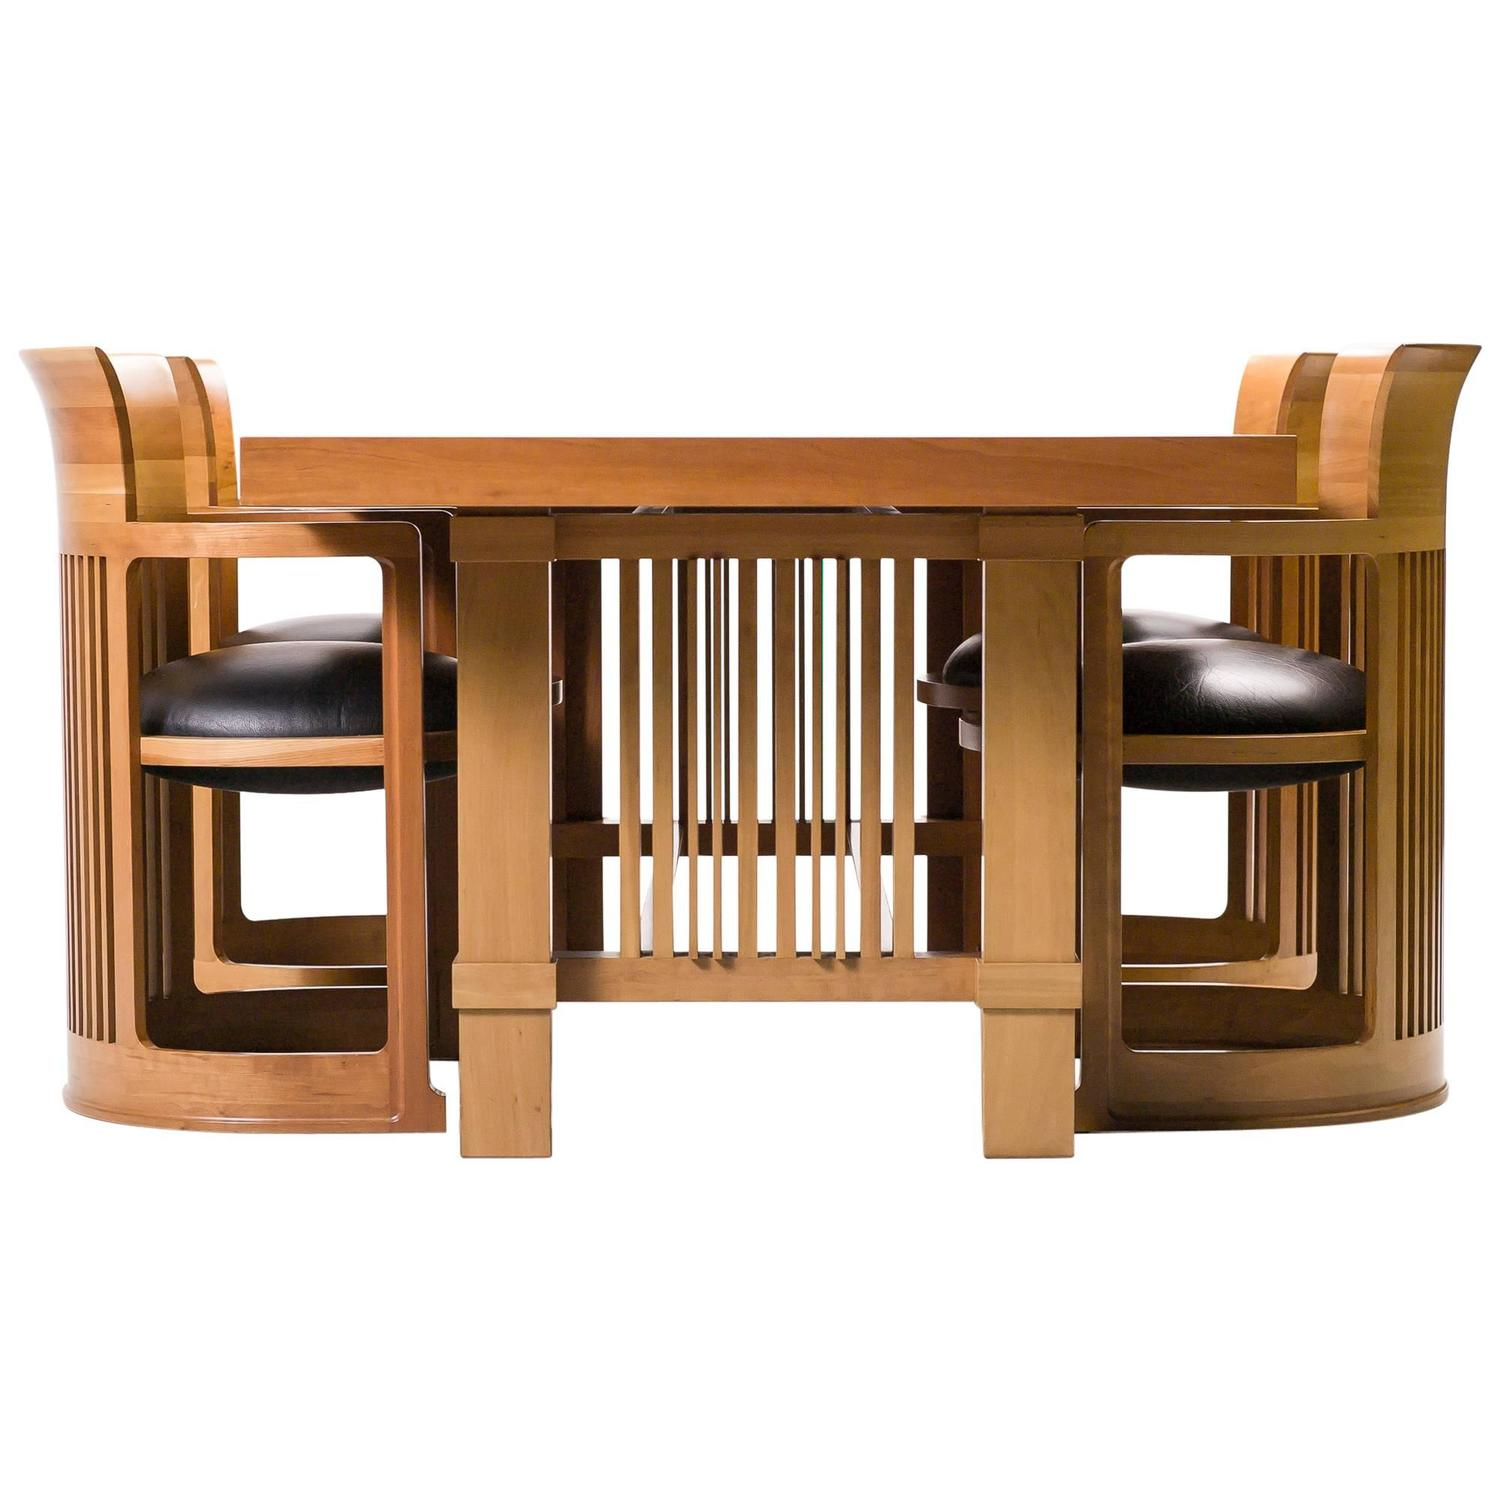 Frank Lloyd Wright Chairs Cassina Taliesin Dining Table And Barrel Chairs Designed